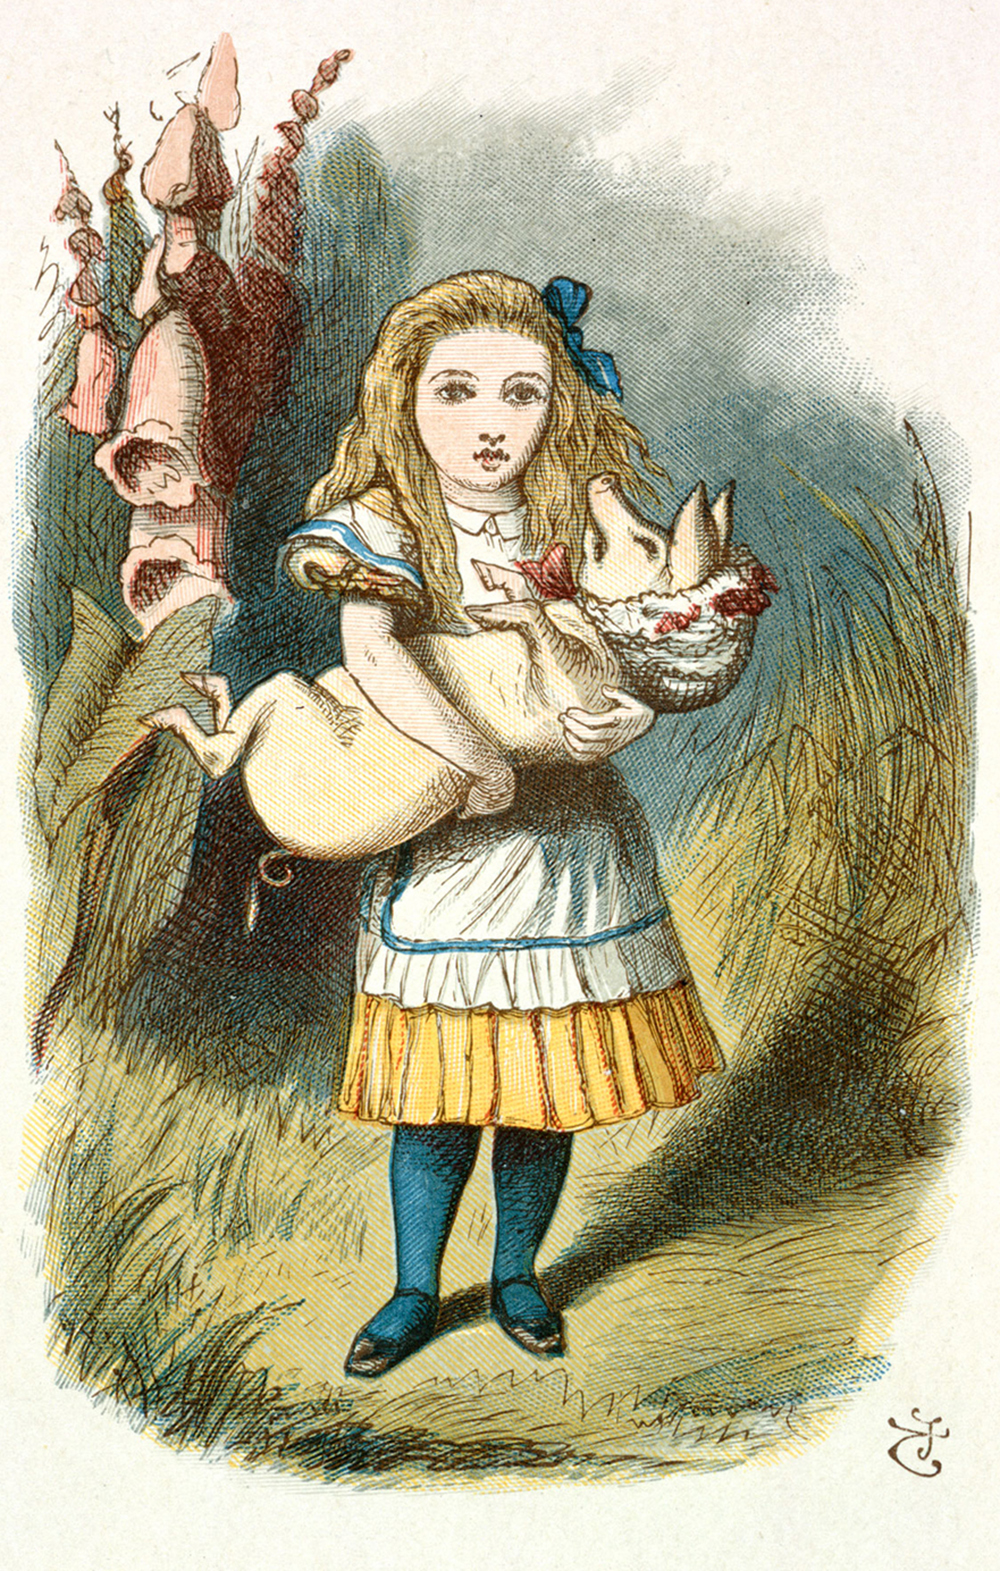 """From The Nursery """"Alice"""", by Lewis Carroll, 1890. Illustration by John Tenniel. British Library."""